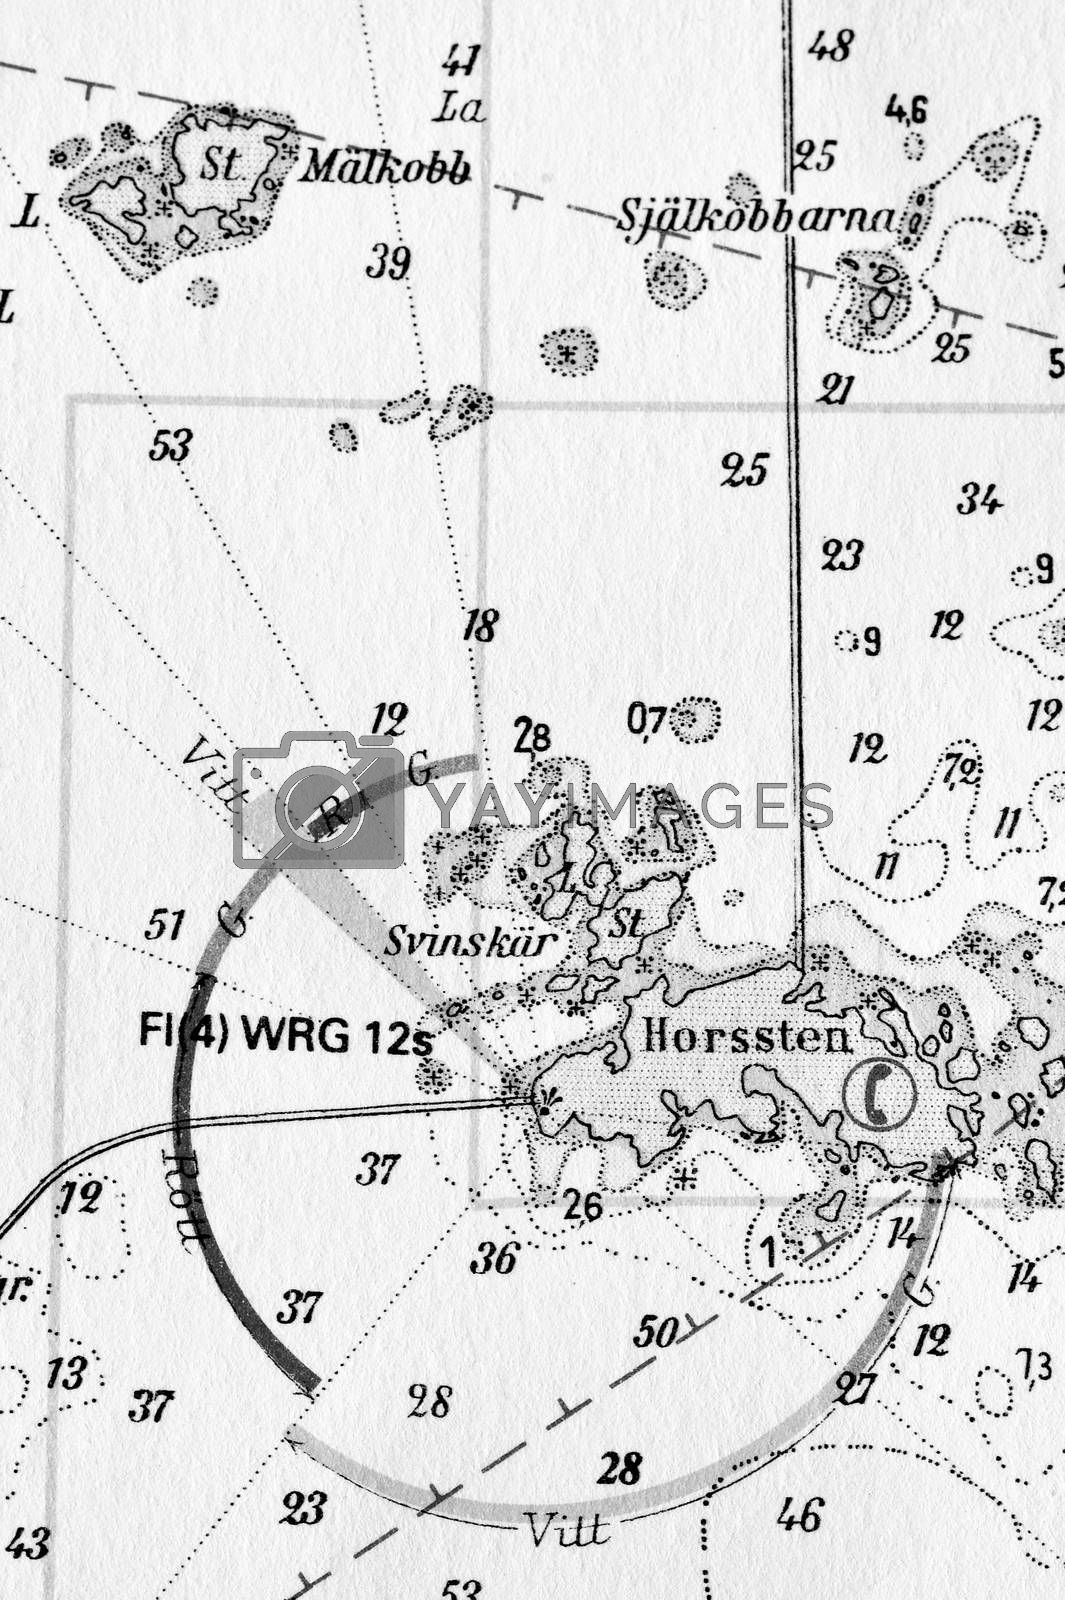 Royalty free image of Macro shot of a old marine chart, detailing Stockholm archipelago by a40757